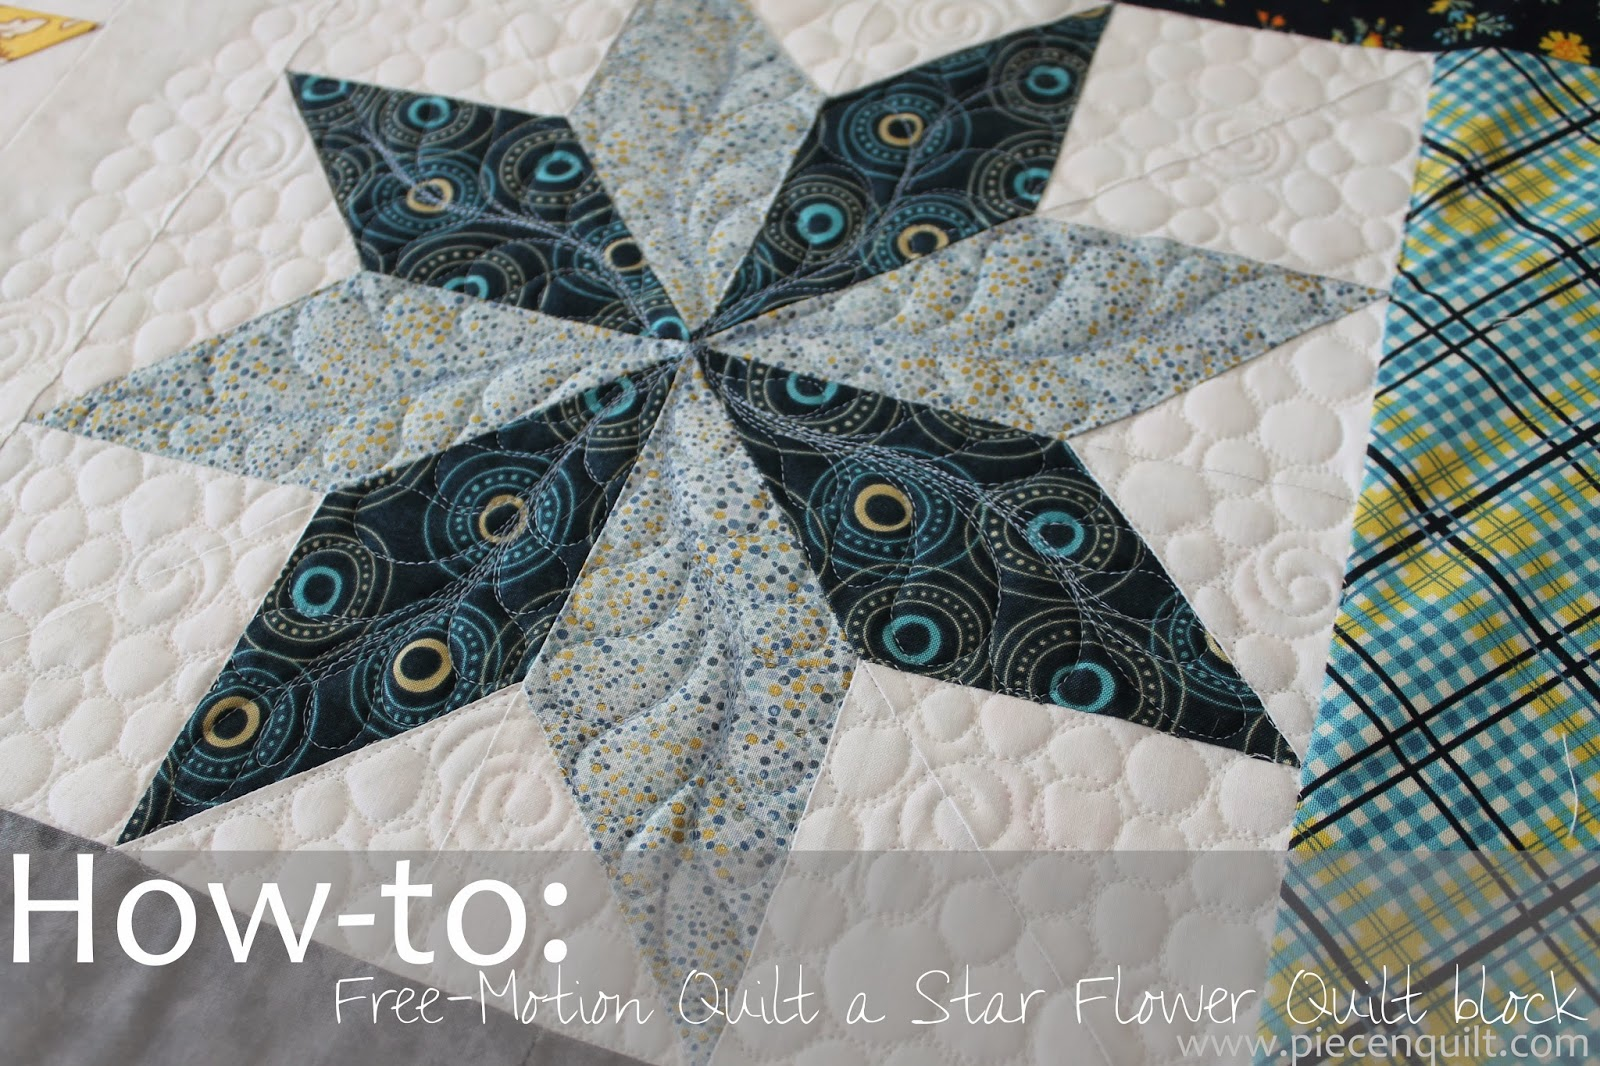 Free Star Flower Quilt Patterns : Piece N Quilt: How-to: Free-Motion Quilt a Star Flower Quilt Block